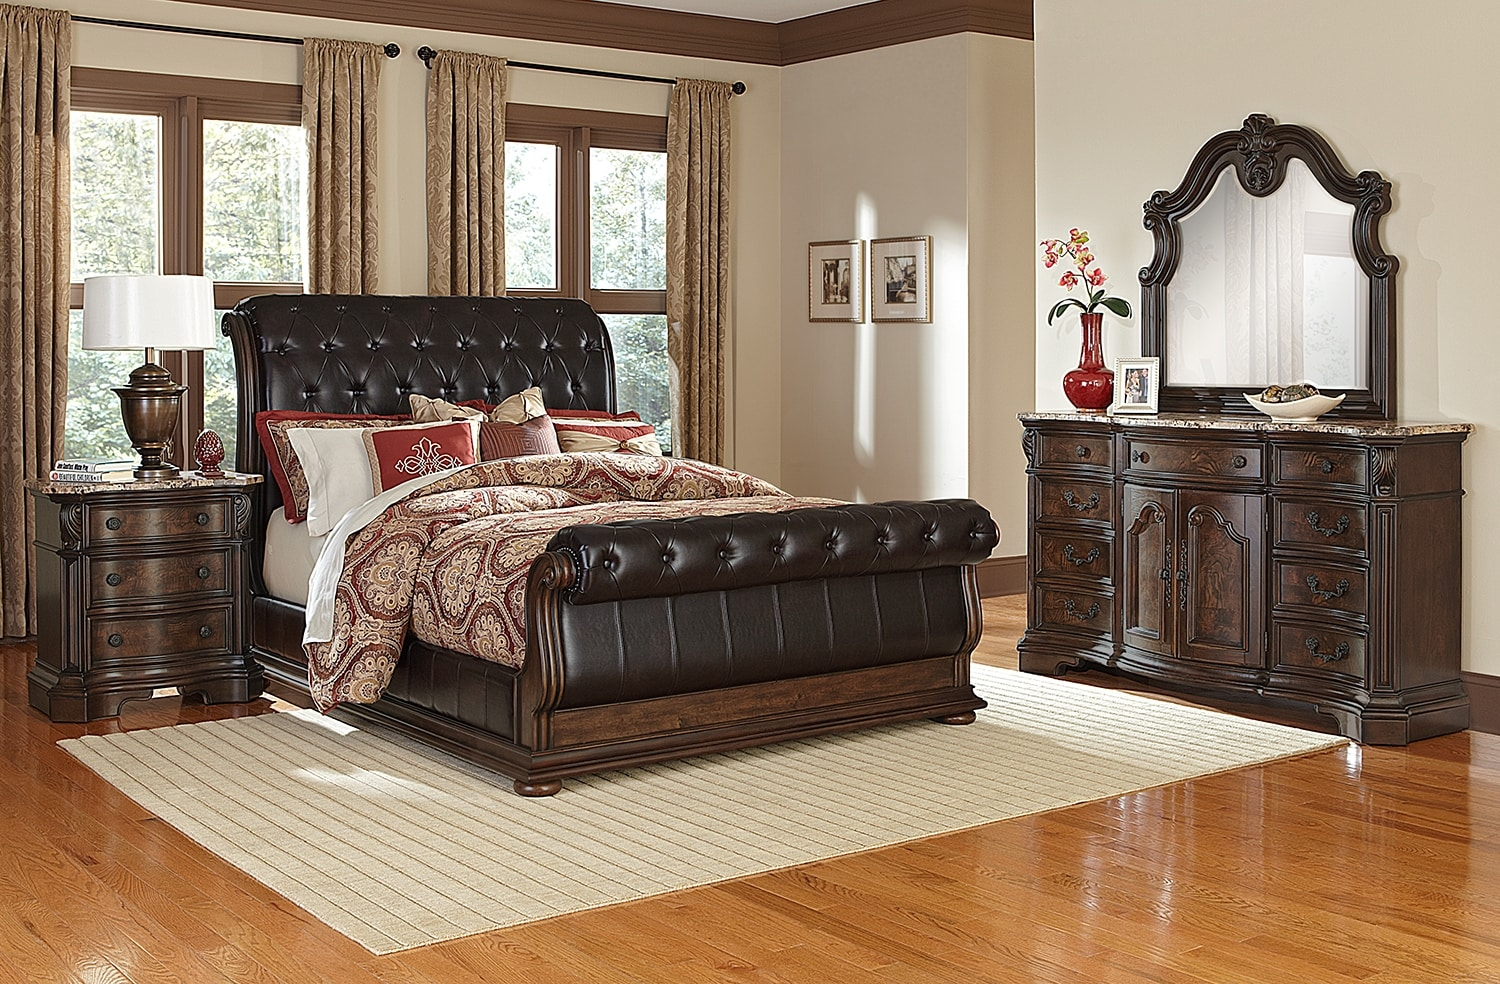 Monticello 6-Piece Queen Sleigh Bedroom Set - Pecan